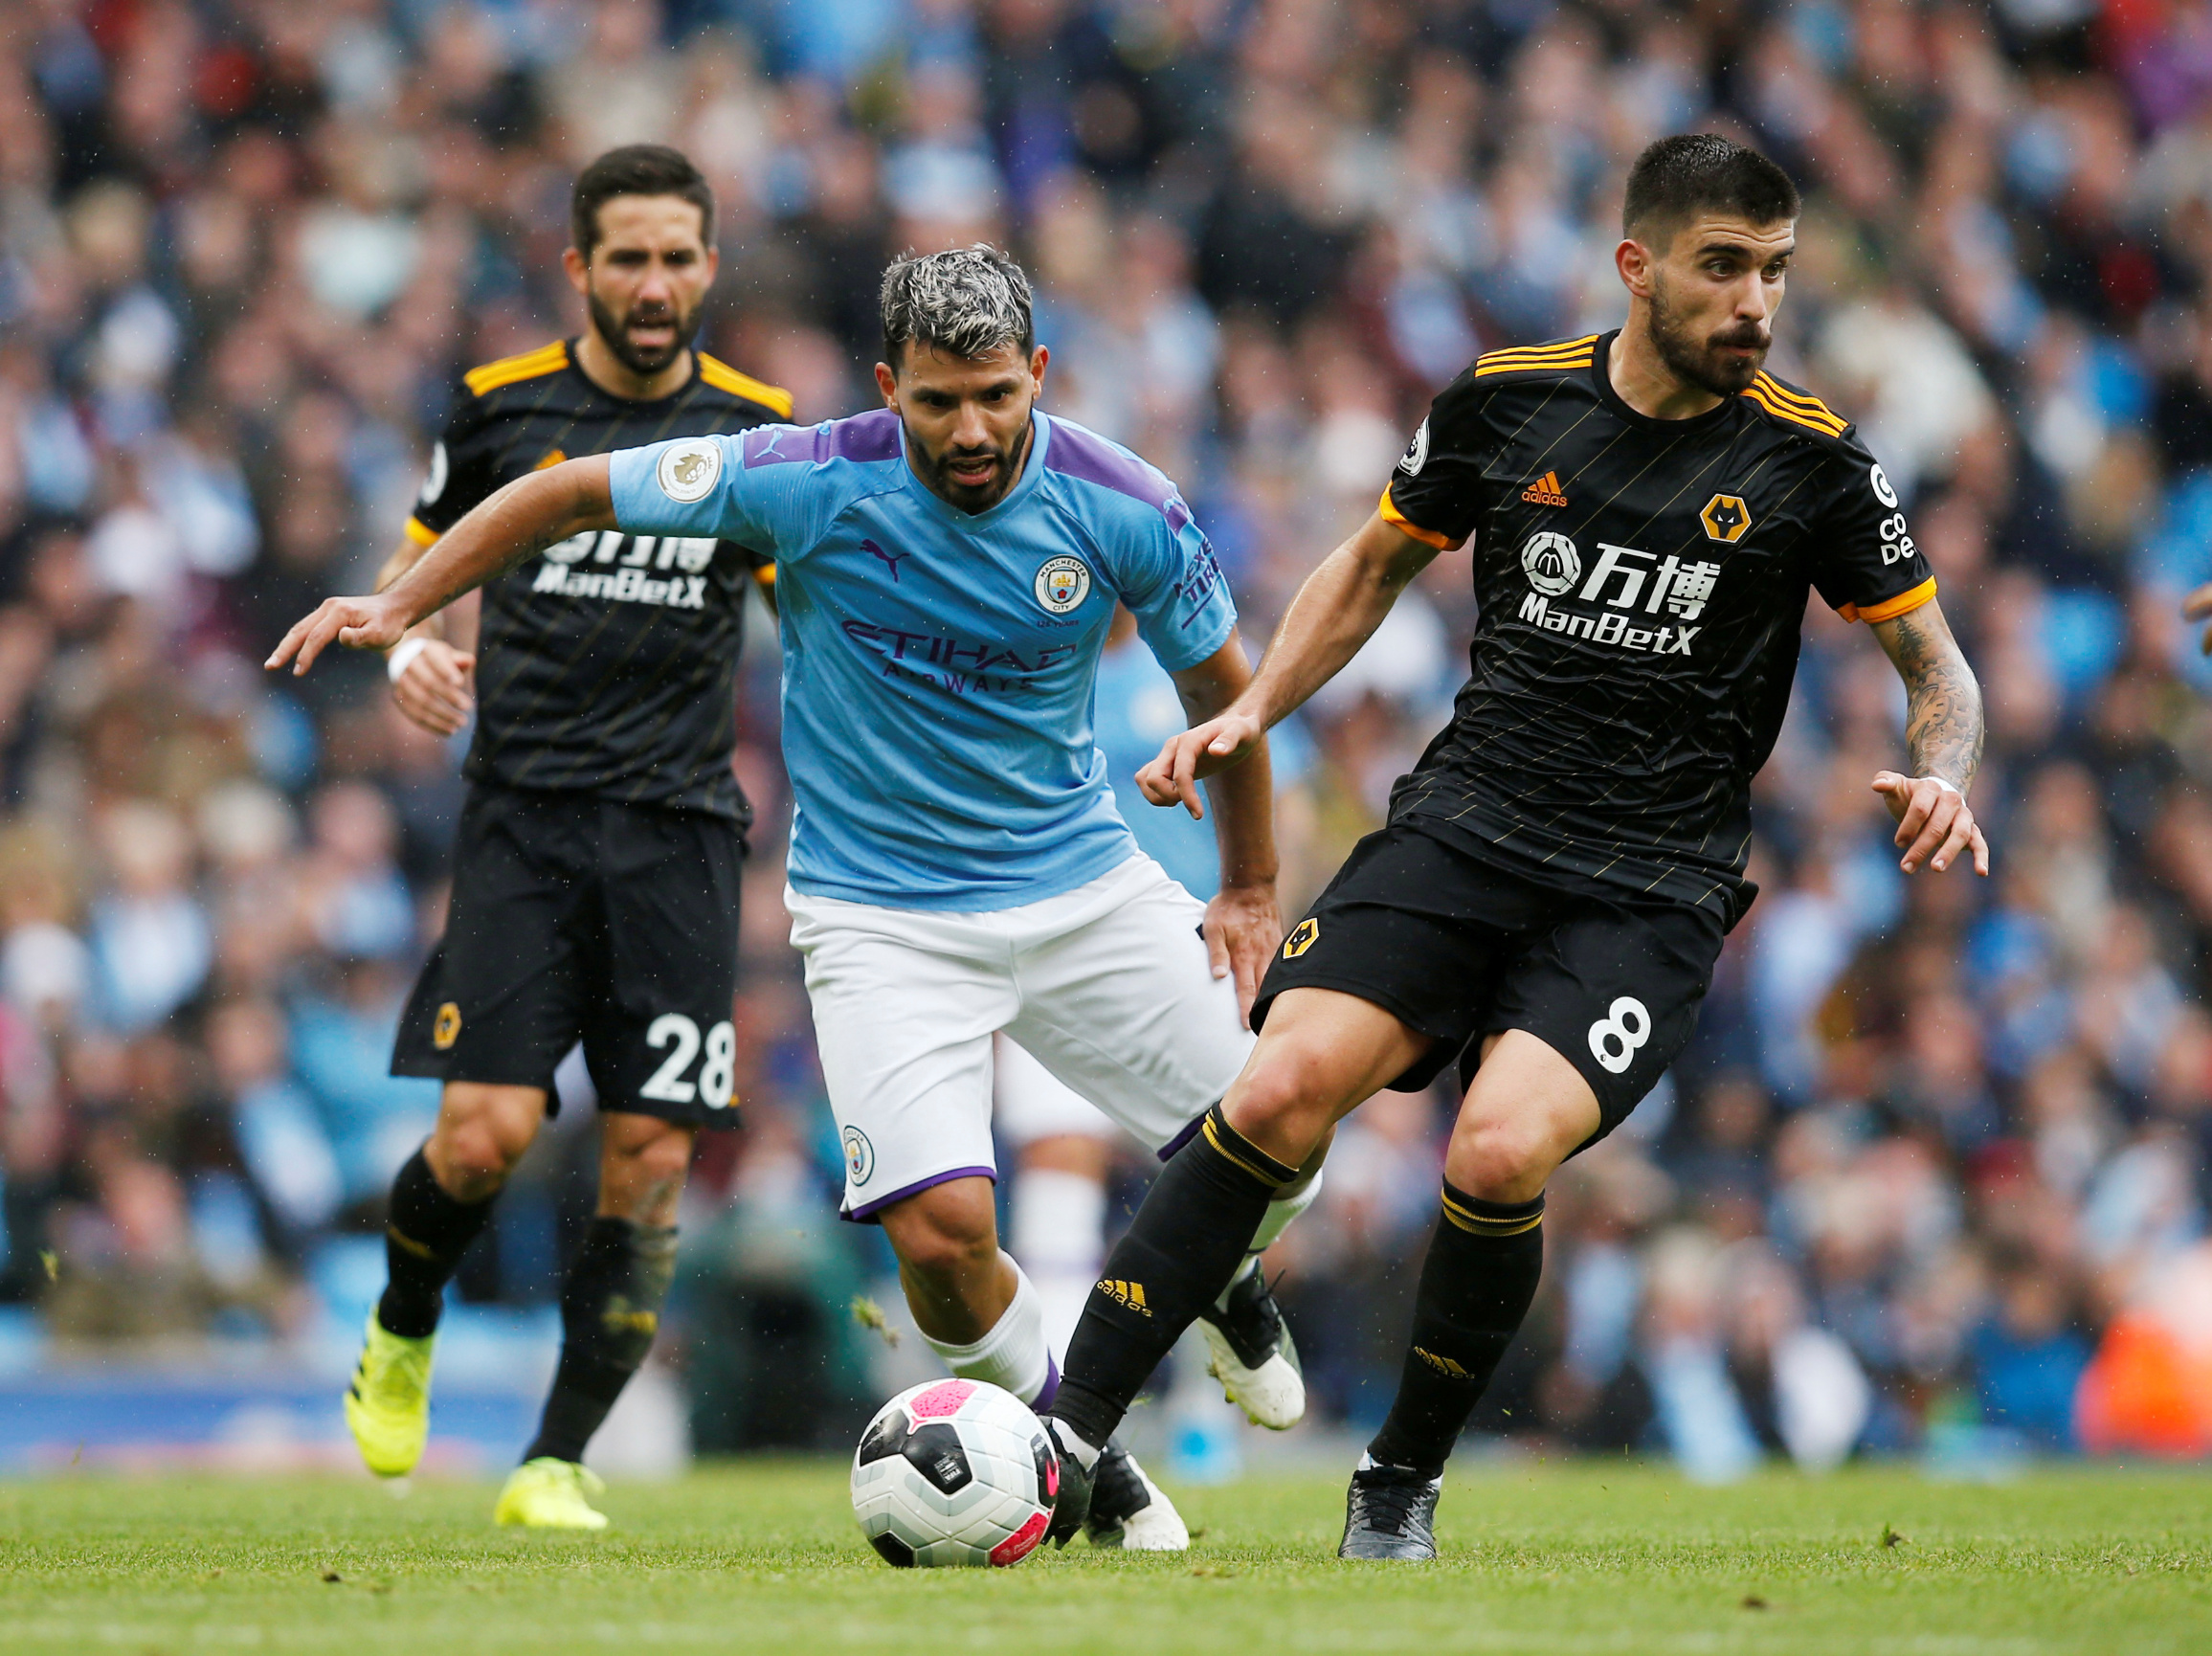 Soccer Football - Premier League - Manchester City v Wolverhampton Wanderers - Etihad Stadium, Manchester, Britain - October 6, 2019  Manchester City's Sergio Aguero in action with Wolverhampton Wanderers' Ruben Neves   REUTERS/Andrew Yates   EDITORIAL USE ONLY. No use with unauthorized audio, video, data, fixture lists, club/league logos or